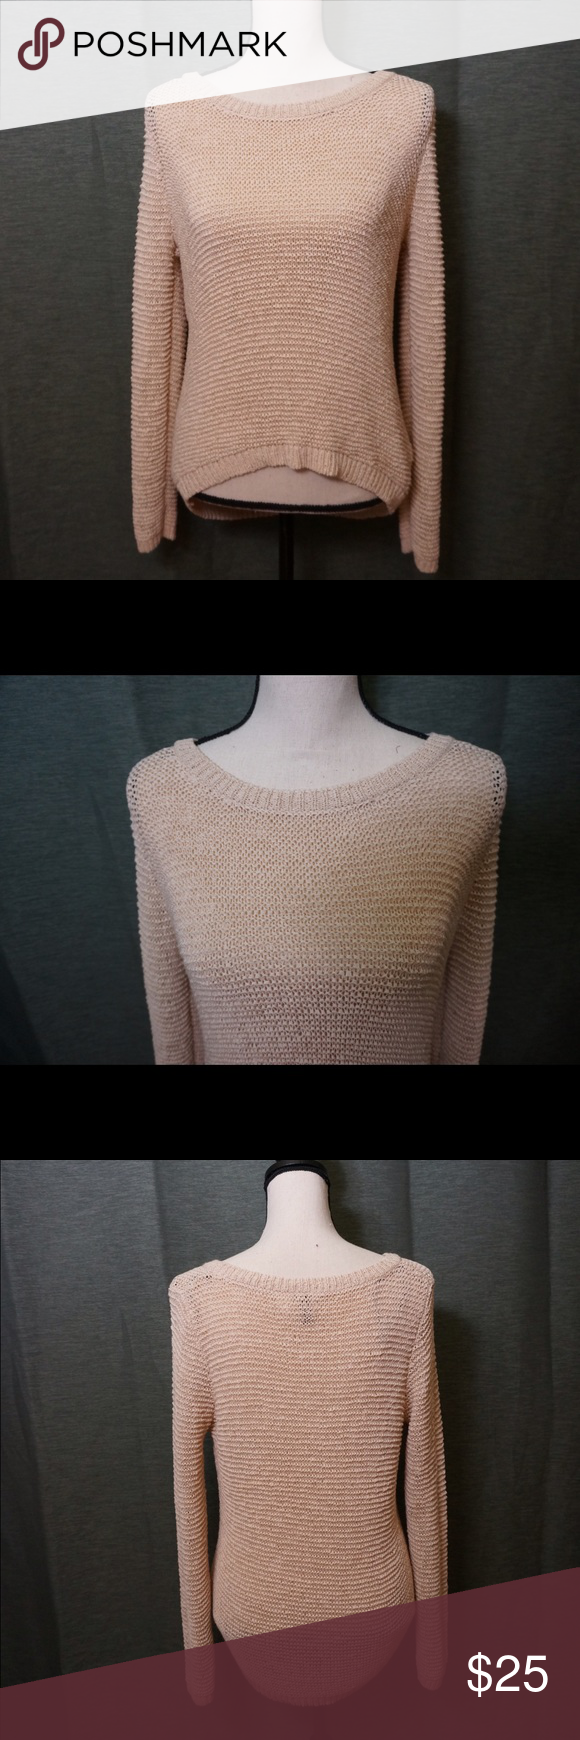 "S5 - H&M sweater Sizing Info: Fit roomy on the mannequin, (Chest 33.8"" x Shoulders 14.9"" x Waist 26.7"" x Hips 35.4"") Material is very stretchy, the knits are really not that close together especially when you stretch the sweater -  would definitely wear something underneath. Worn once. Tag says Xs but fits more like a S. Sweaters Crew & Scoop Necks"